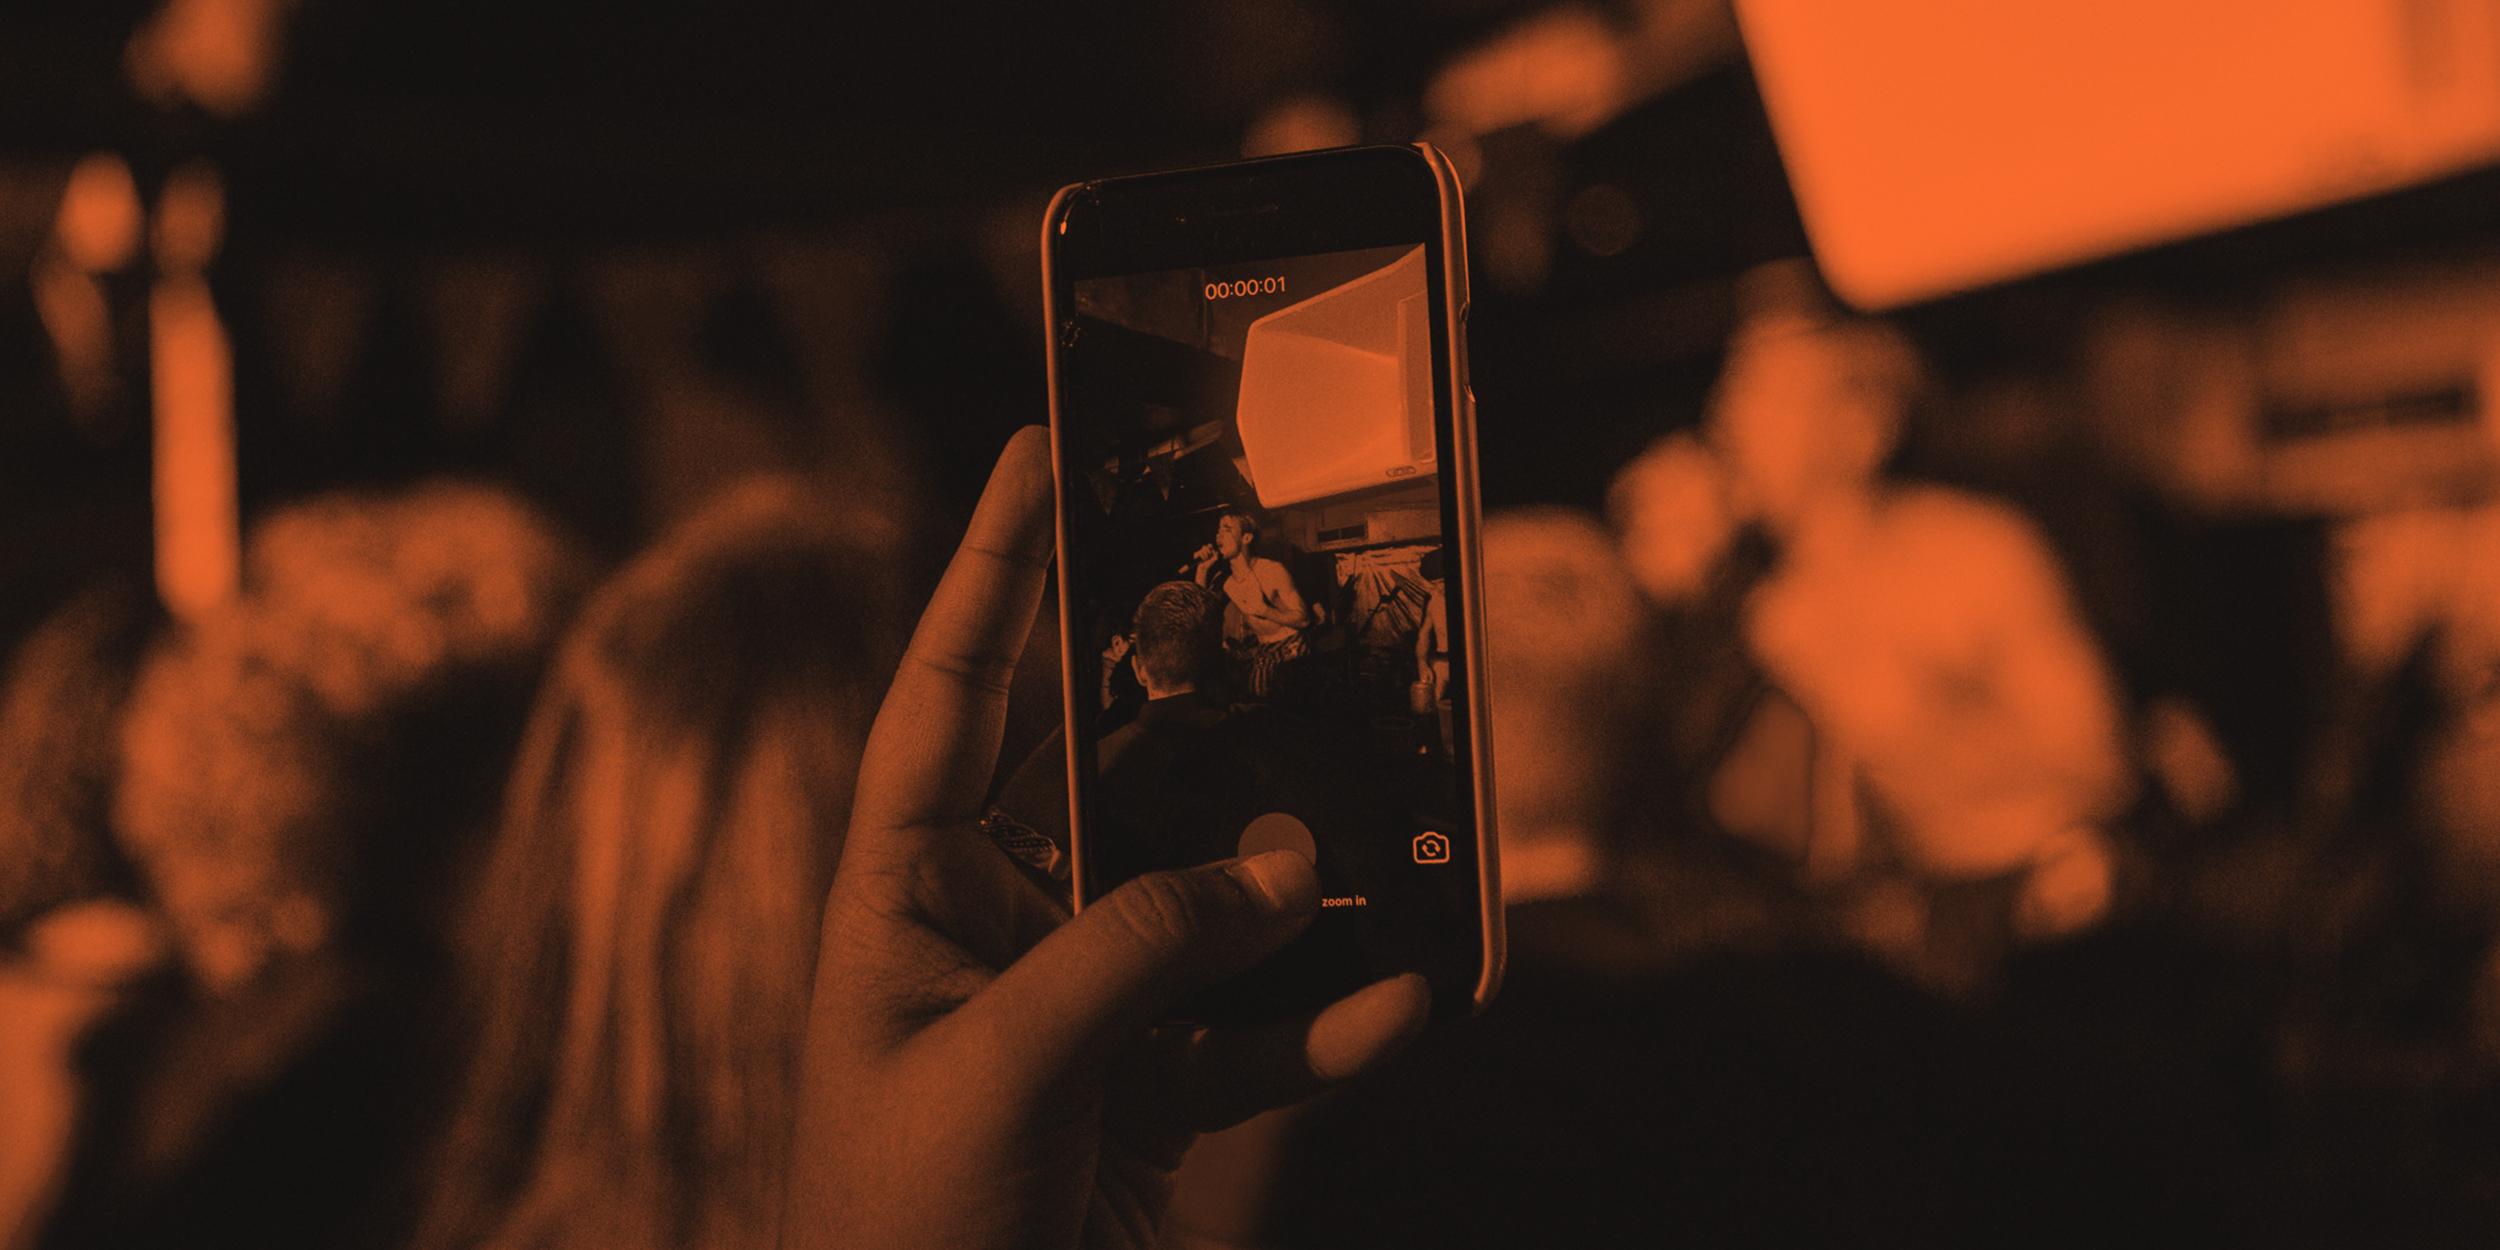 Photo of a phone at a live gig